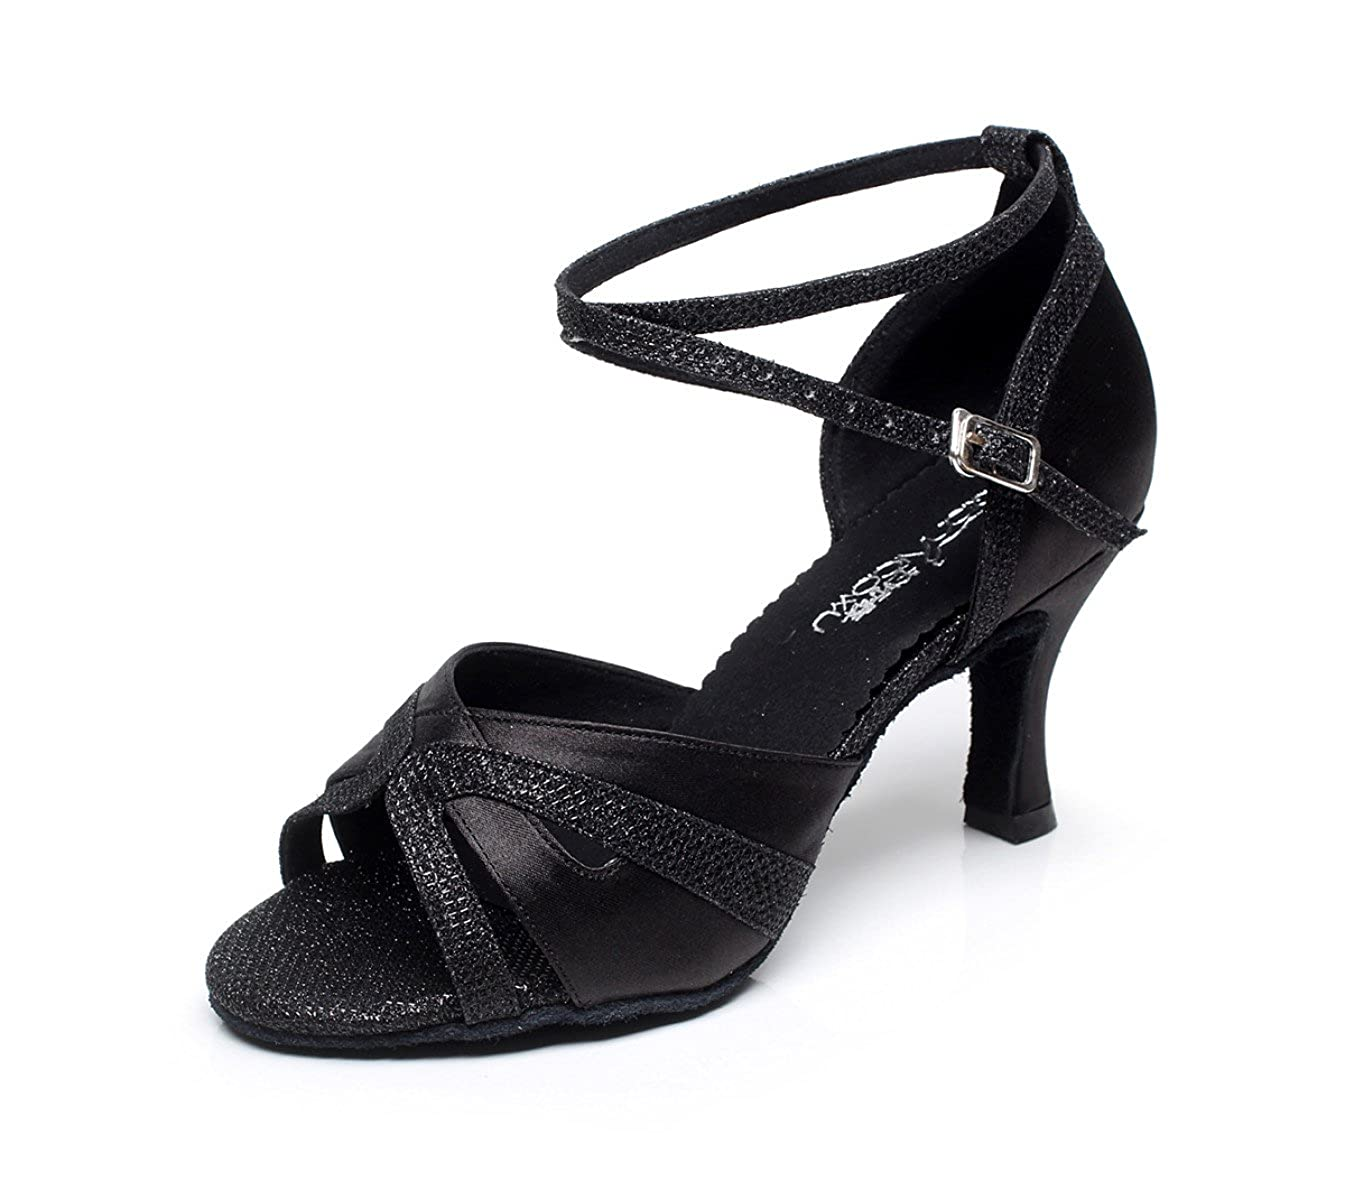 JSHOE Dance Sexy Talons Salsa Jazz Tango Dance Chaussures Ballroom Latin Tango Party Danse Chaussures Talons Hauts,Black-heeled7.5cm-UK7.5/EU42/Our43 - d08fa01 - fast-weightloss-diet.space